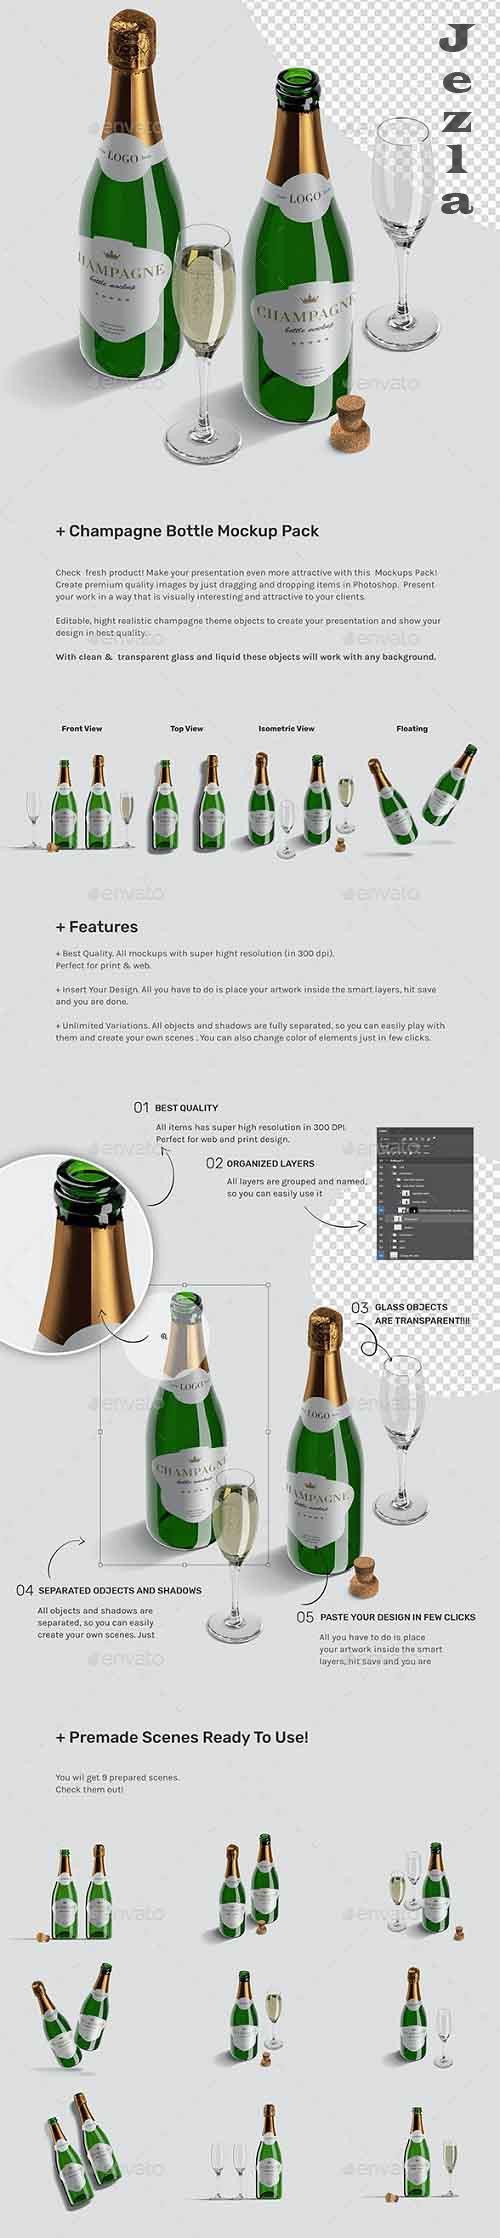 Champagne Bottle Mockup Pack 26775293